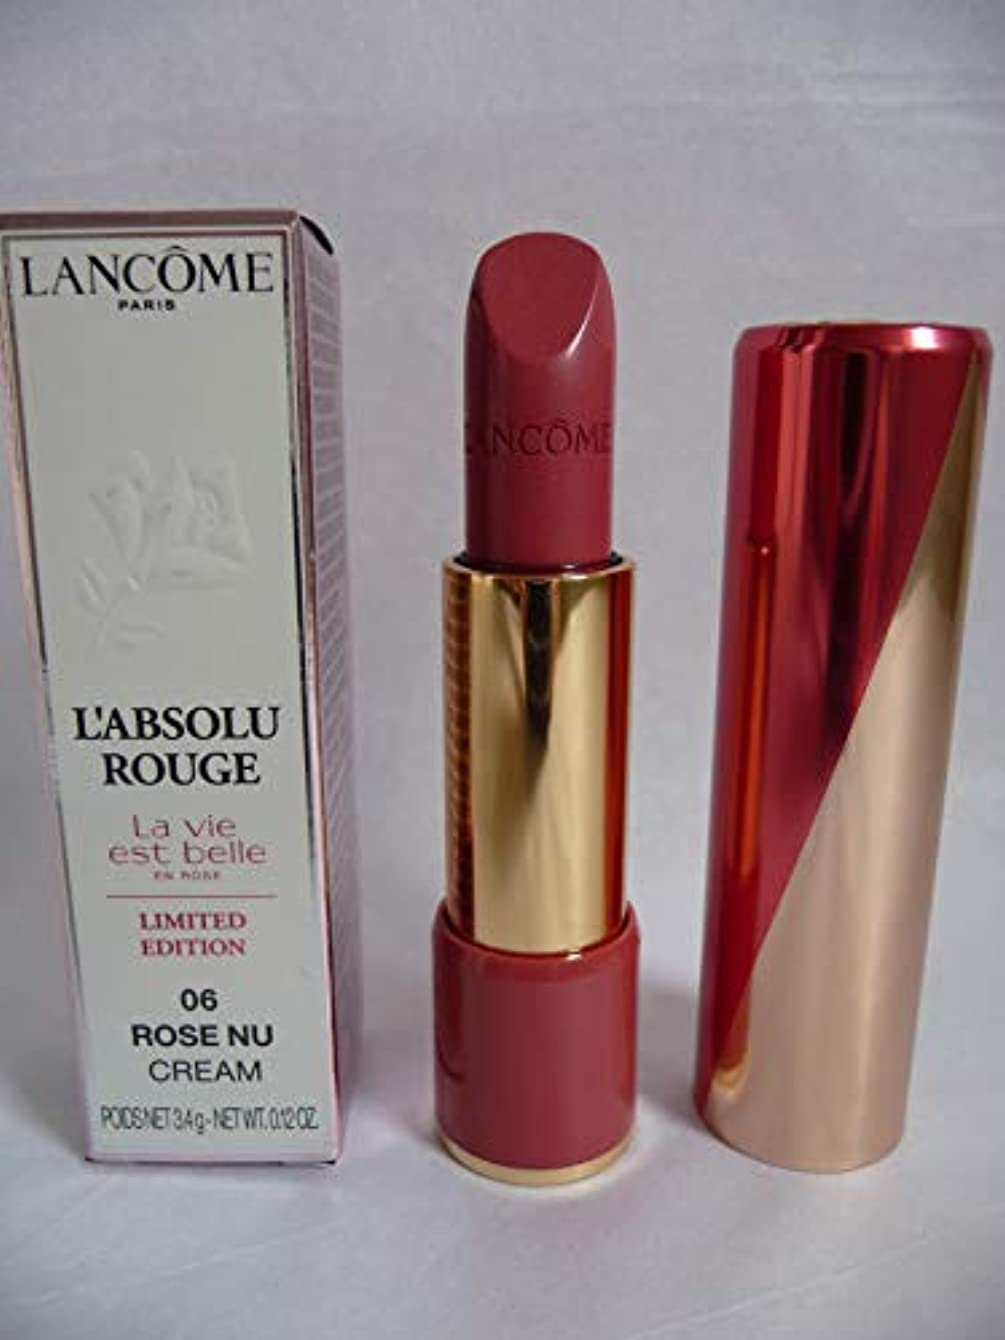 雇ったに付ける過敏なランコム L' Absolu Rouge Hydrating Shaping Lipcolor - # 06 Rose Nu (Cream) (Limited Edition) 3.4g/0.12oz並行輸入品